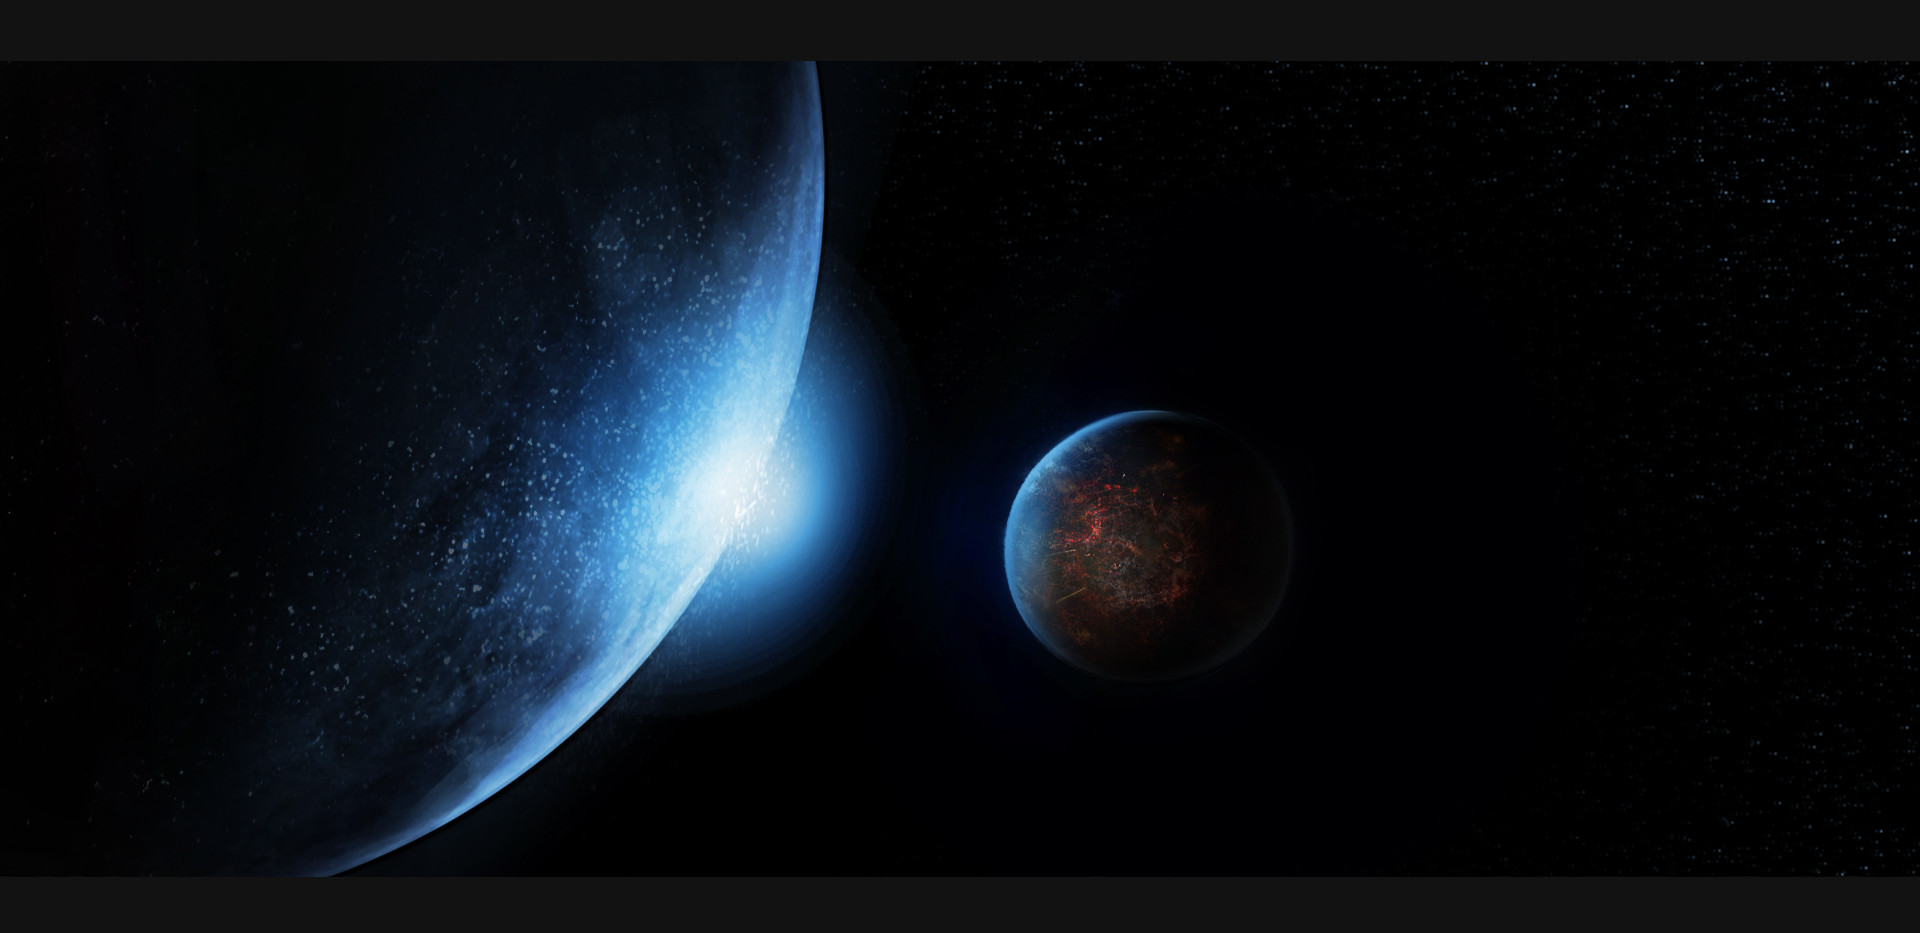 ConceptArt_MoonEarth.jpg